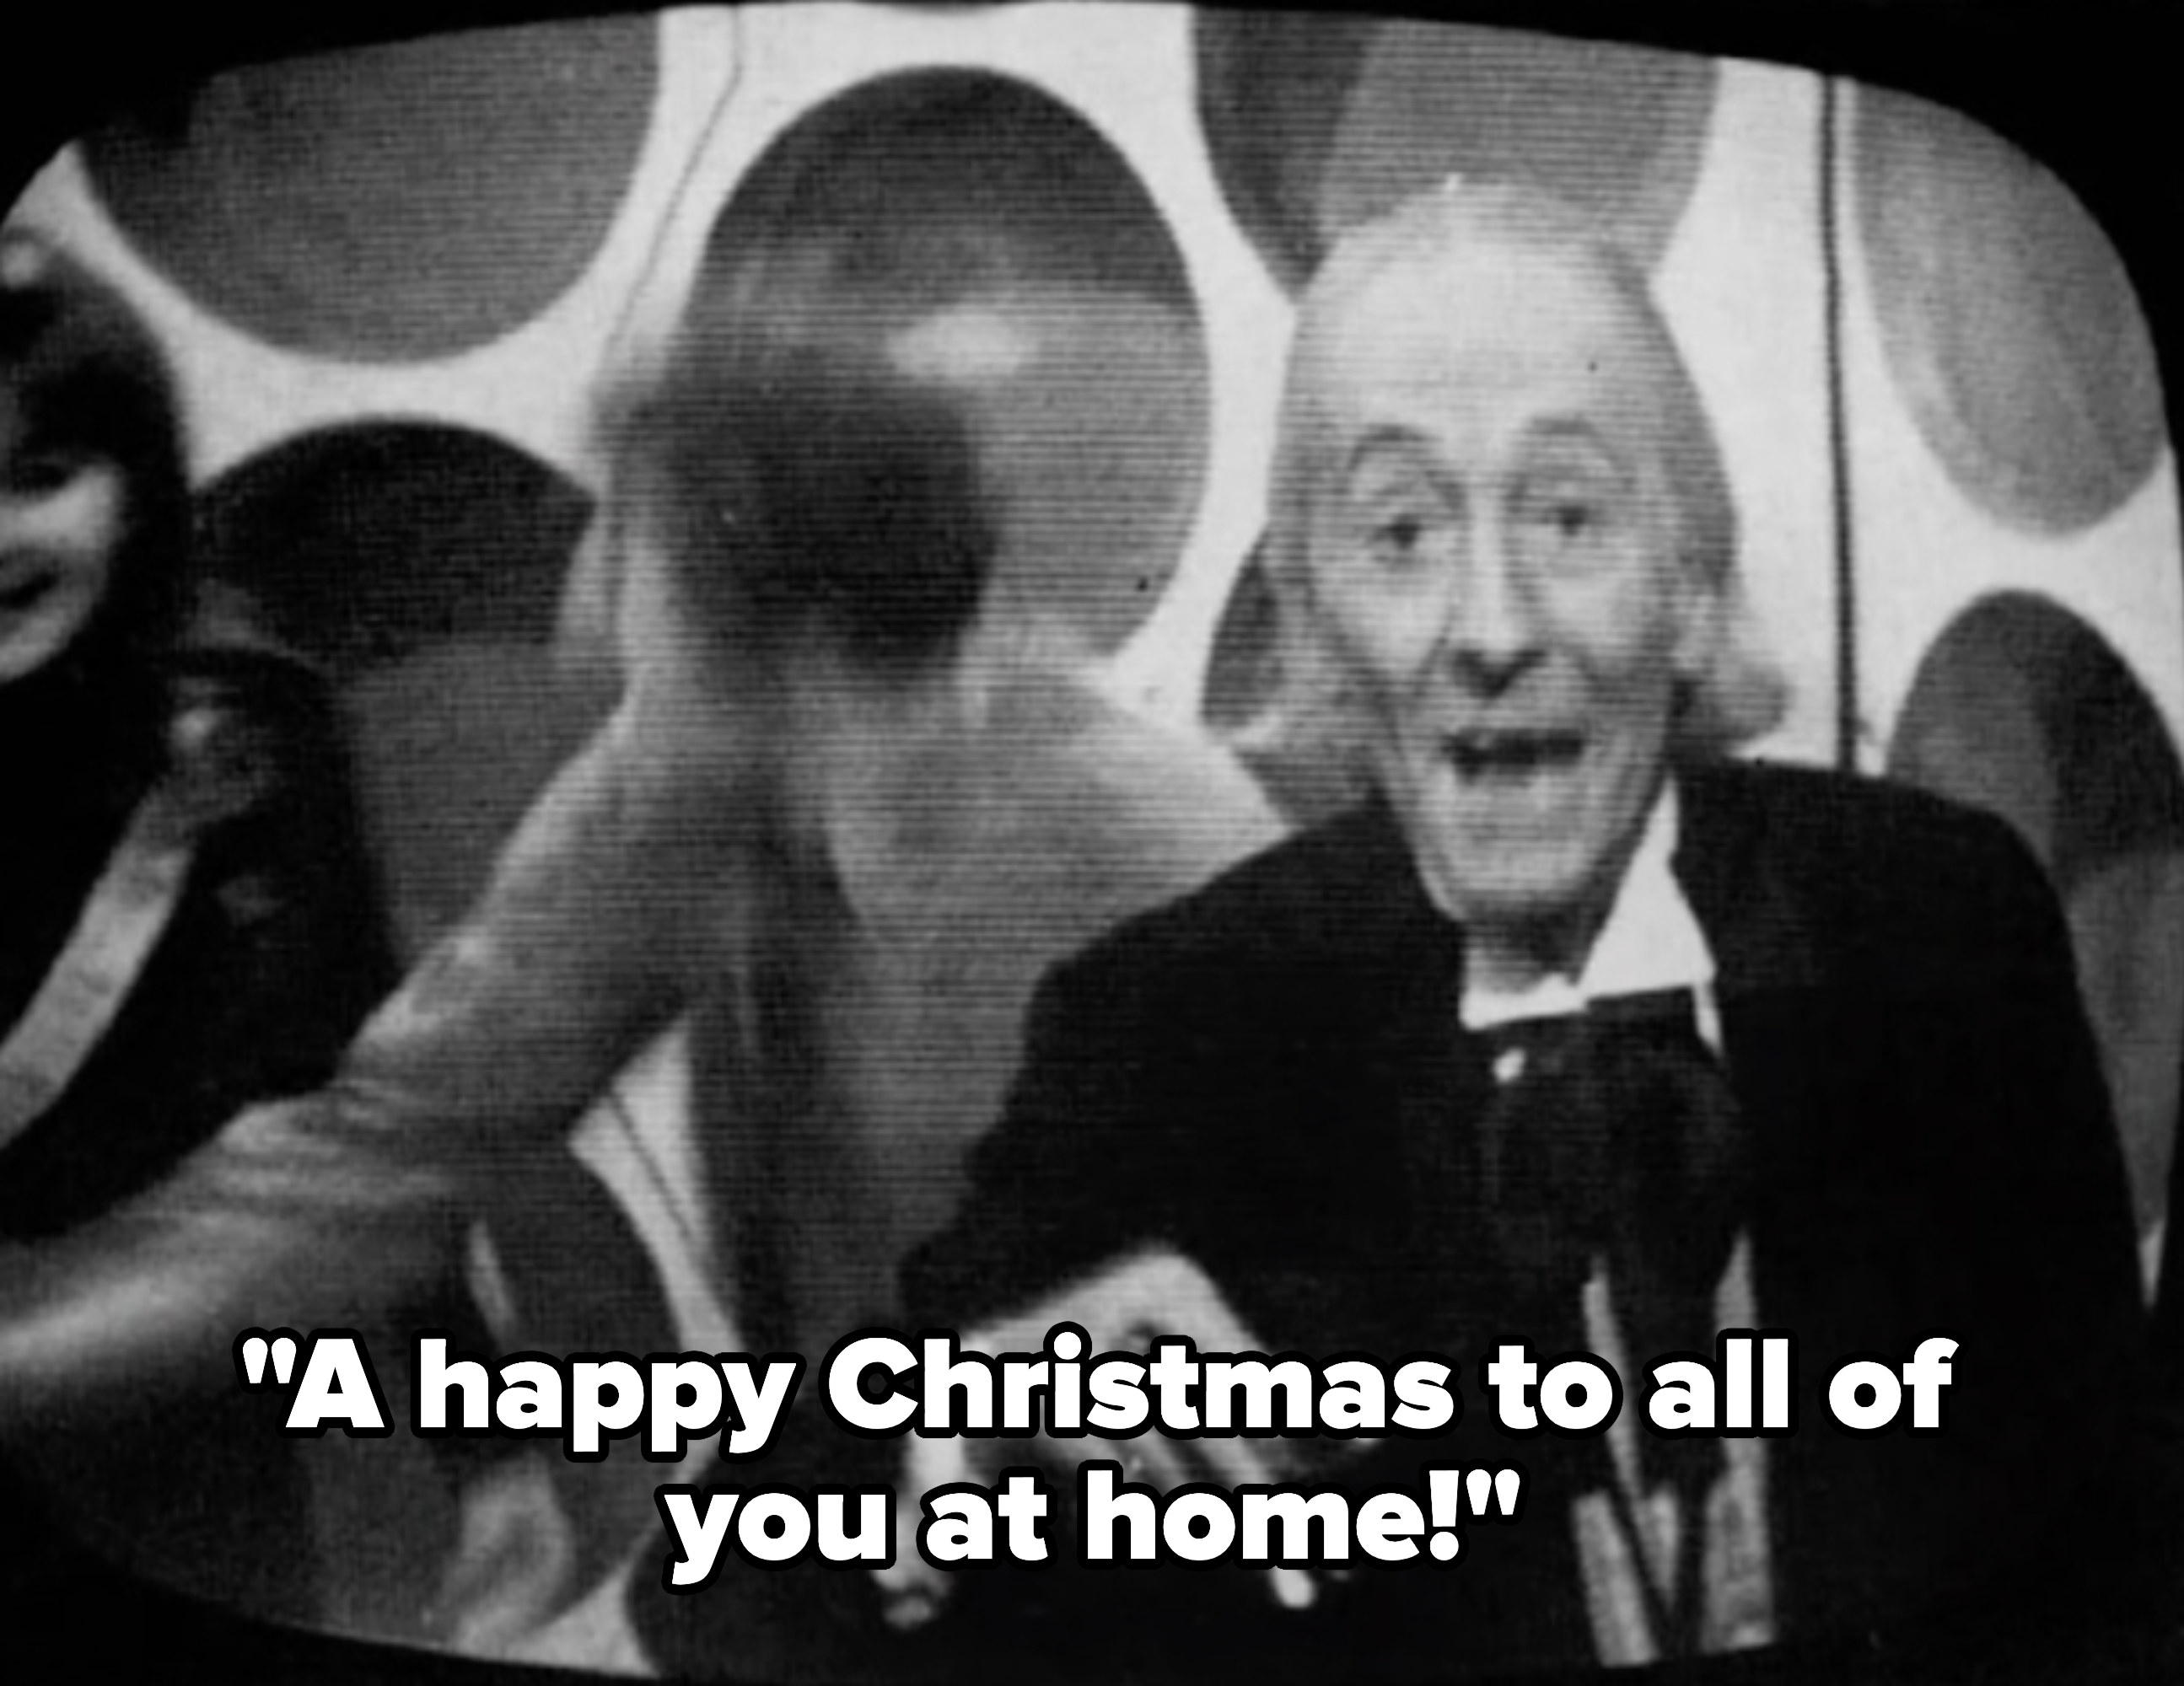 The Doctor wishing viewers a Merry Christmas